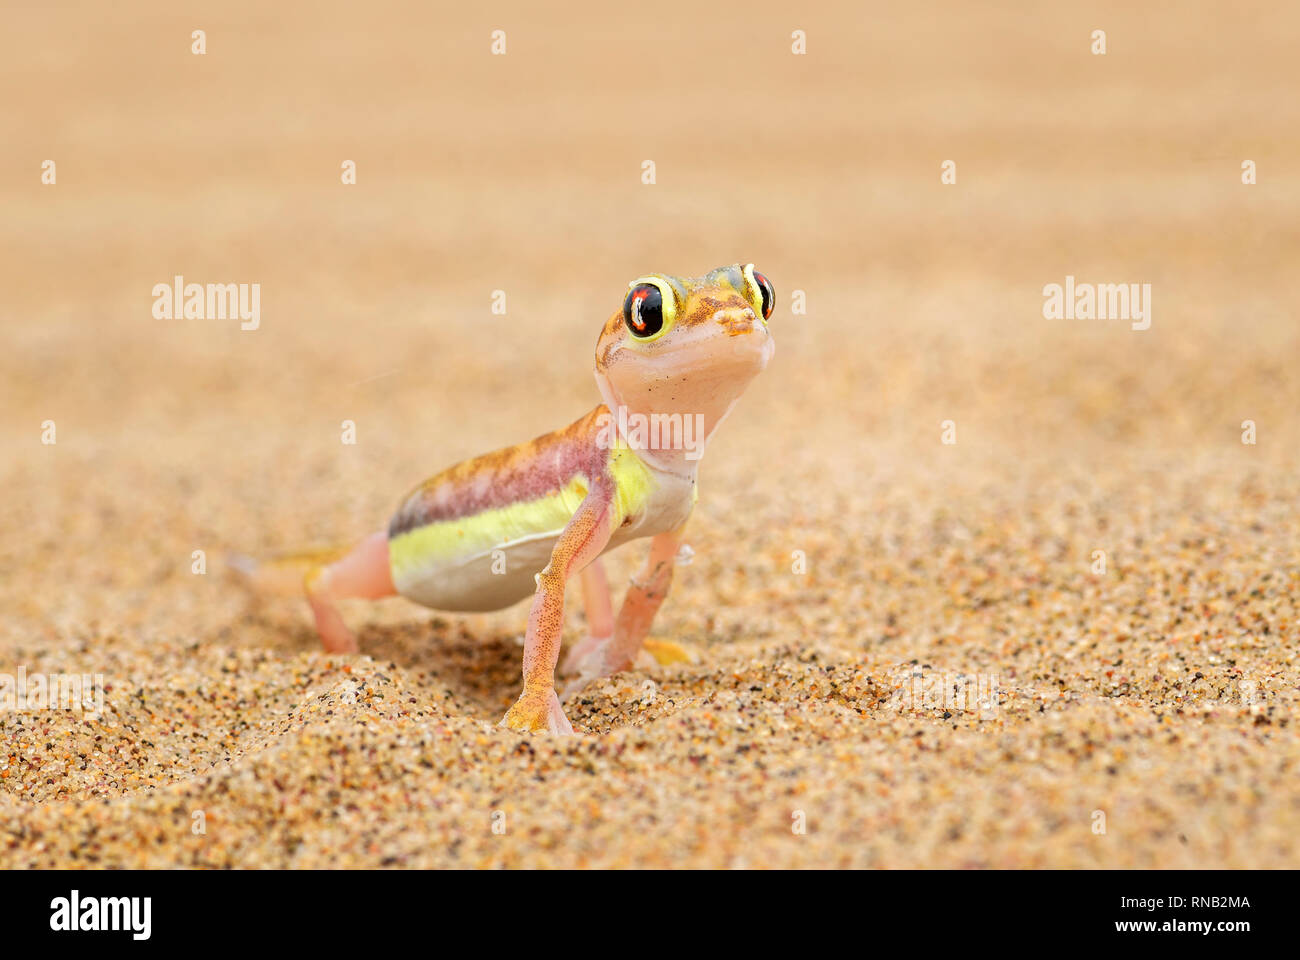 Namib Sand Gecko - Pachydactylus rangei, beautiful small gecko endemic in southwest Africa, Namib desert, Walvis bay, Namibia. Stock Photo